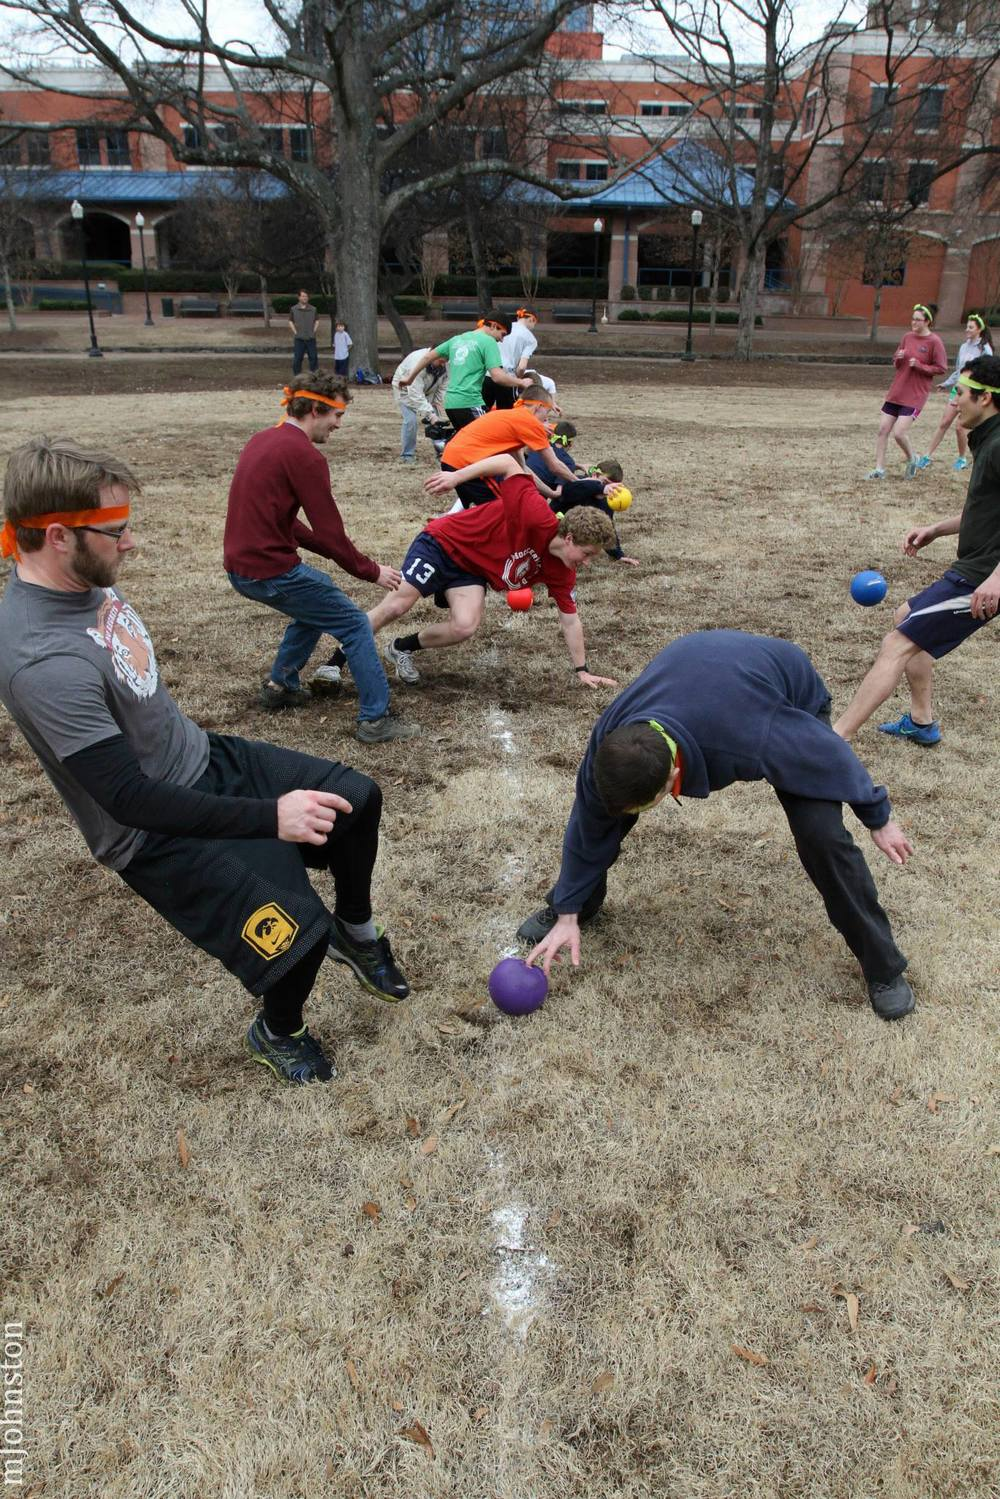 One of our Special Interest events: Dodgeball at Retro Winter Games